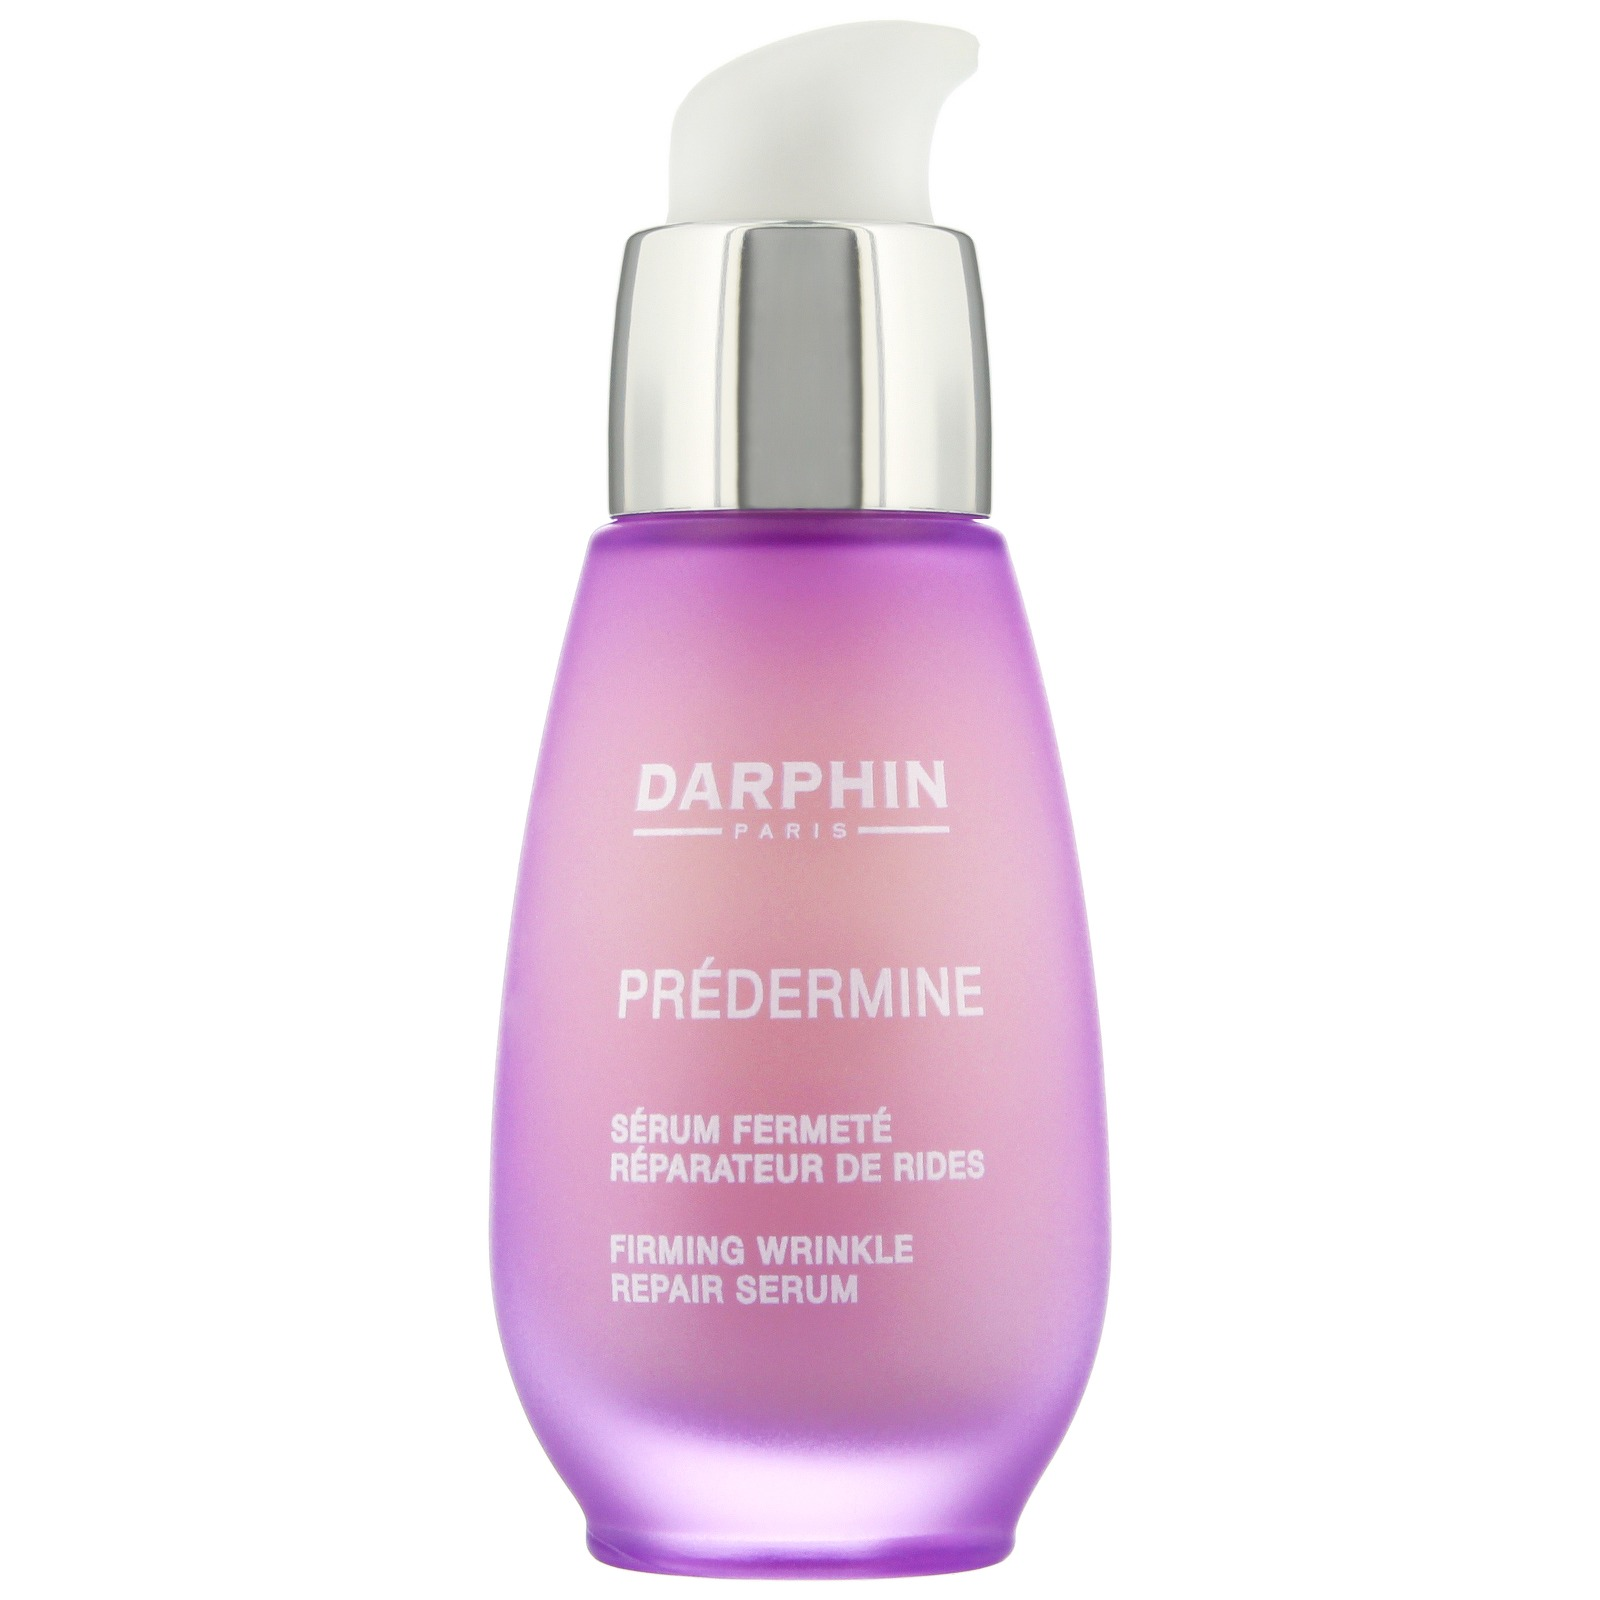 Darphin Serums Predermine Firming Wrinkle Repair Serum 30ml